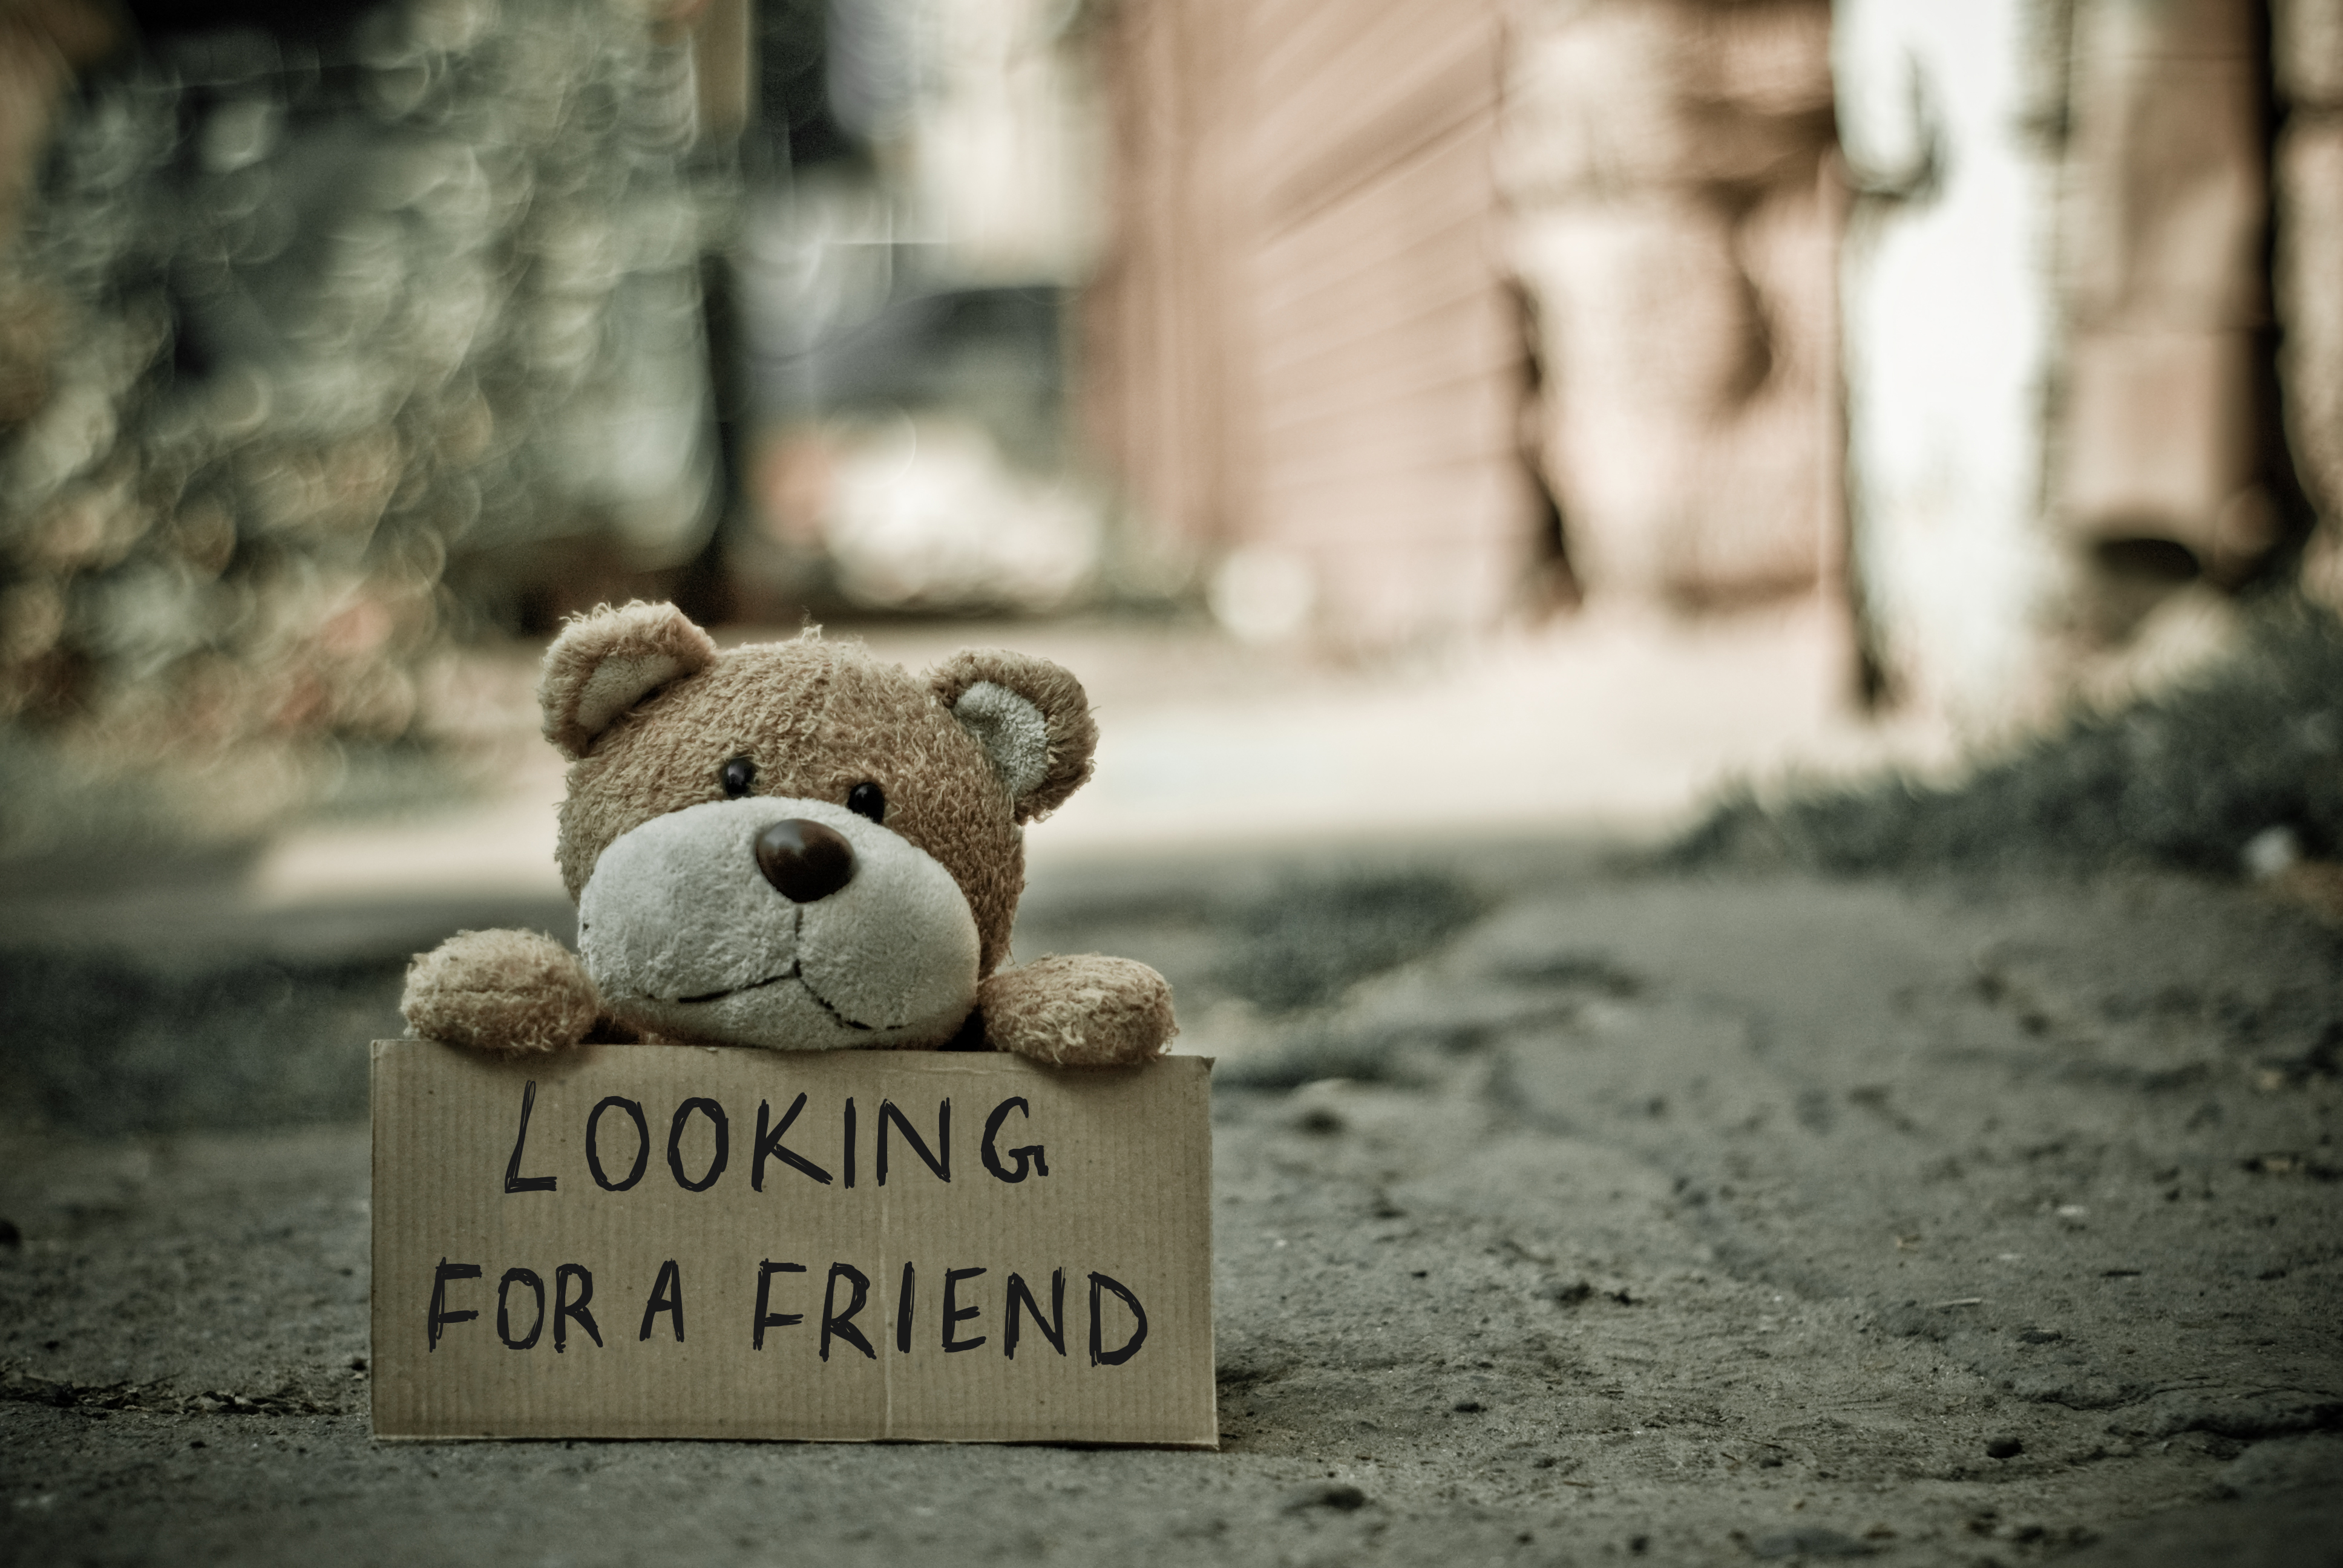 58434 download wallpaper Words, Teddy Bear, Toy, Inscription screensavers and pictures for free